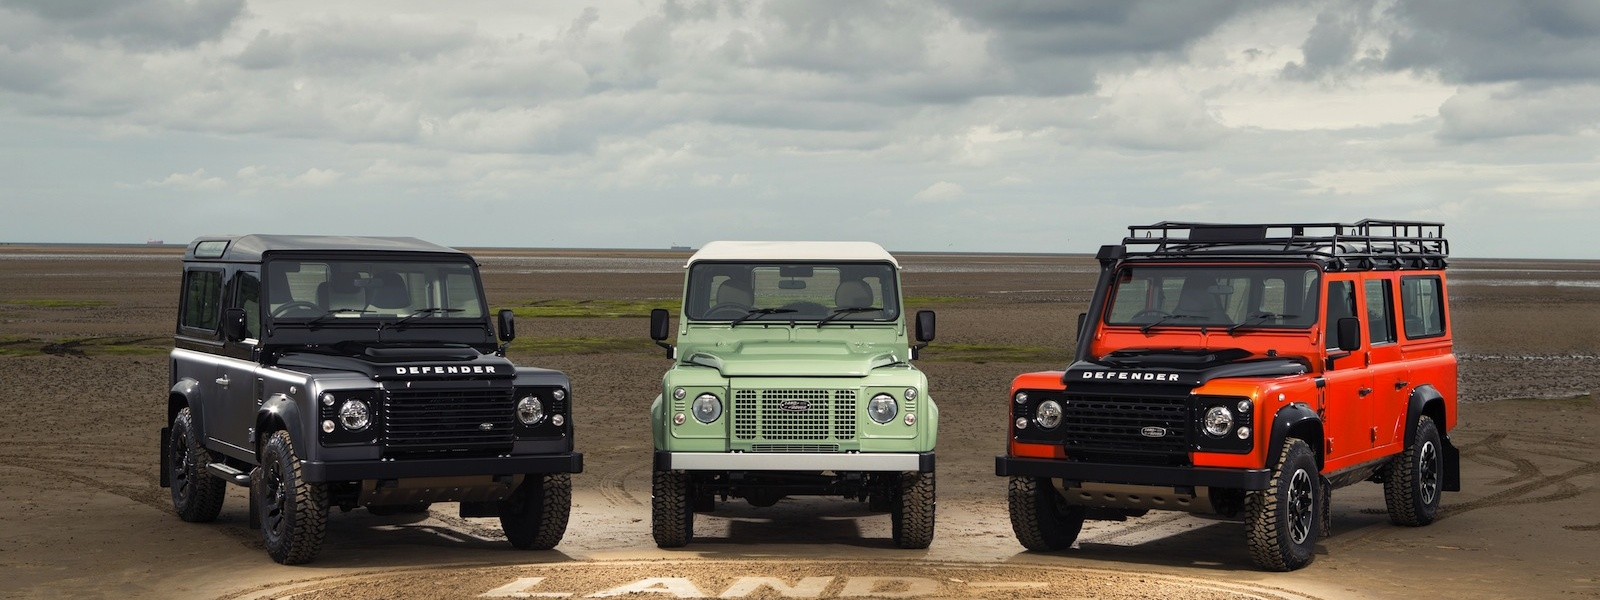 Land-Rover-Defender-Electrified-1.jpg